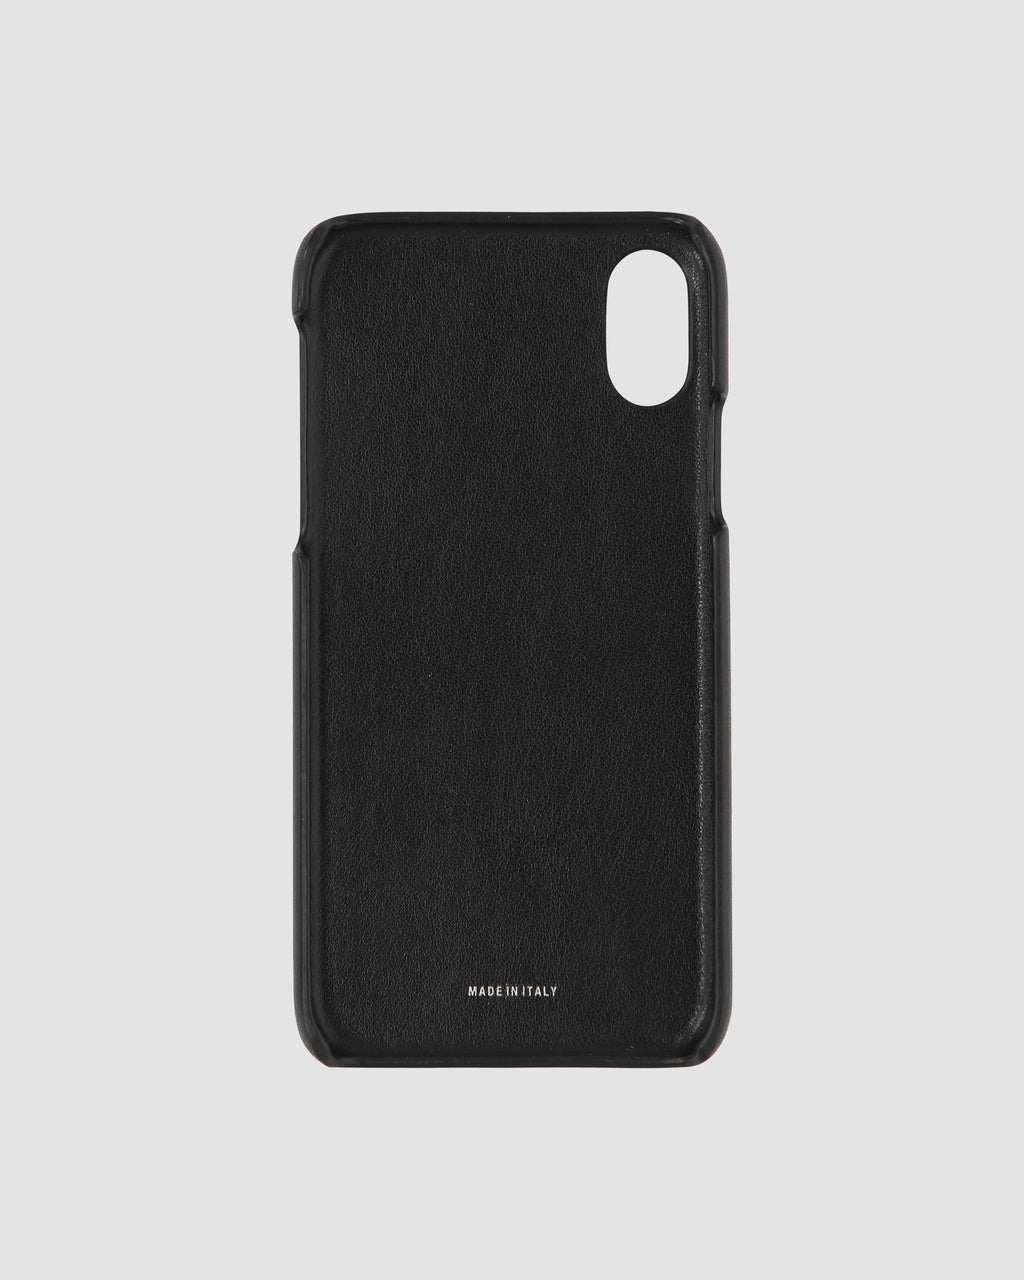 1017 ALYX 9SM | IPHONE CASE | TECH ACCESSORIES | Accessories, BLACK, Google Shopping, Man, S20, SS20, TECH ACCESSORIES, UNISEX, Woman